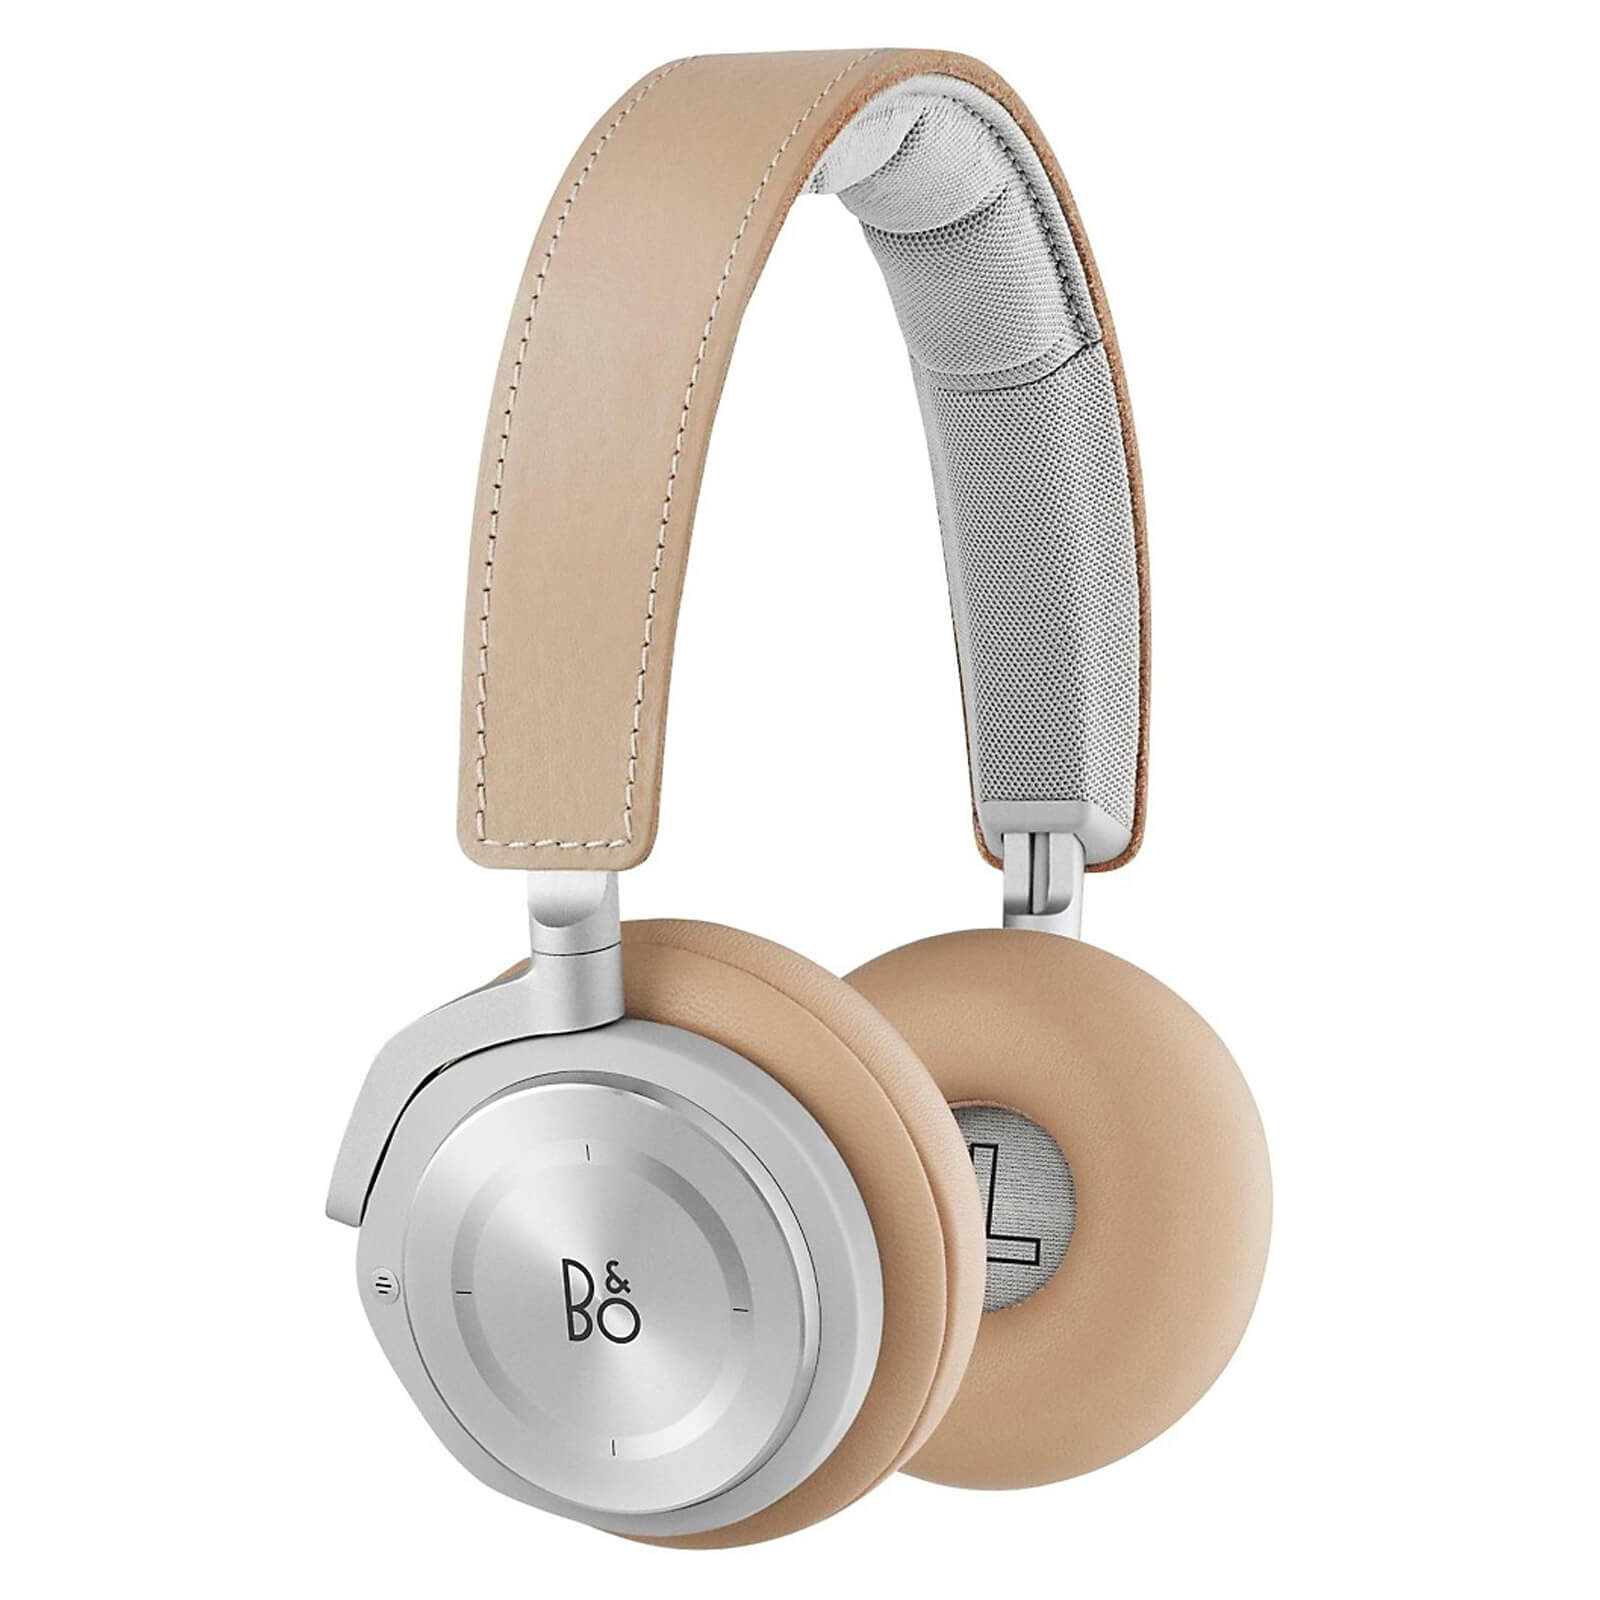 Bang & Olufsen Beoplay H6 Headphones - Natural Leather (1st Generation)